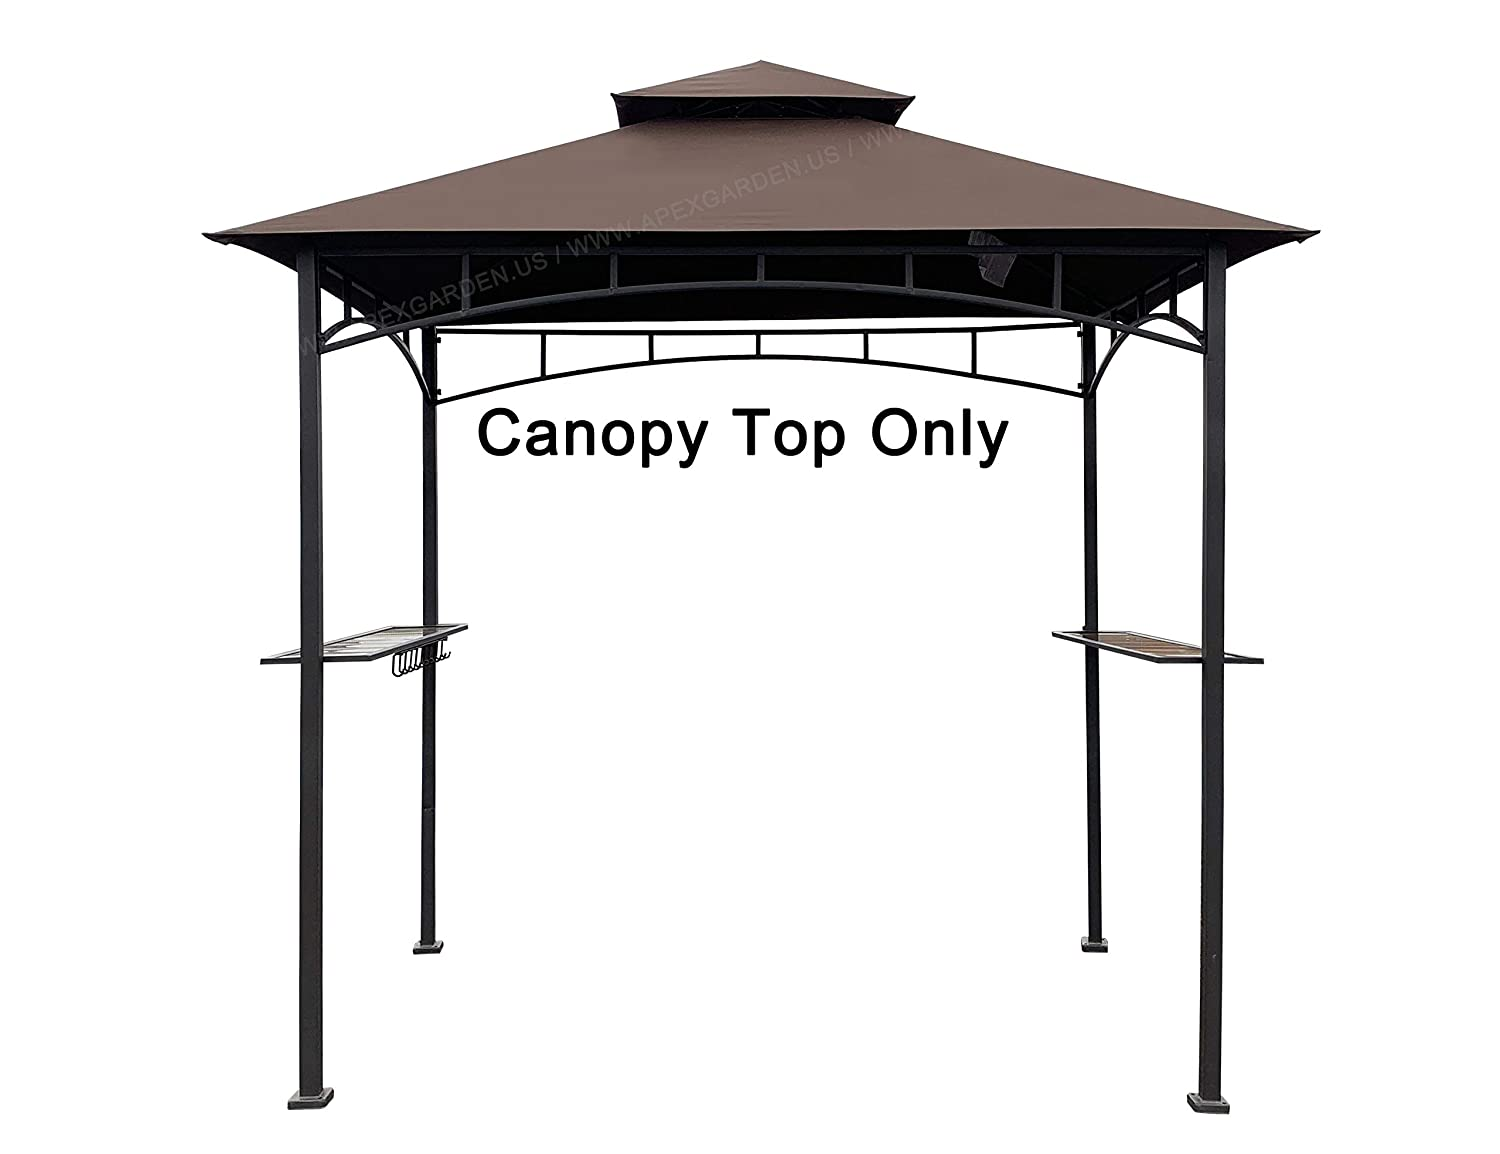 APEX GARDEN Replacement Canopy Top CAN ONLY FIT for Model L-GG001PST-F 8 X 5 Brown Double Tiered Canopy Grill BBQ Gazebo Canopy Top Only